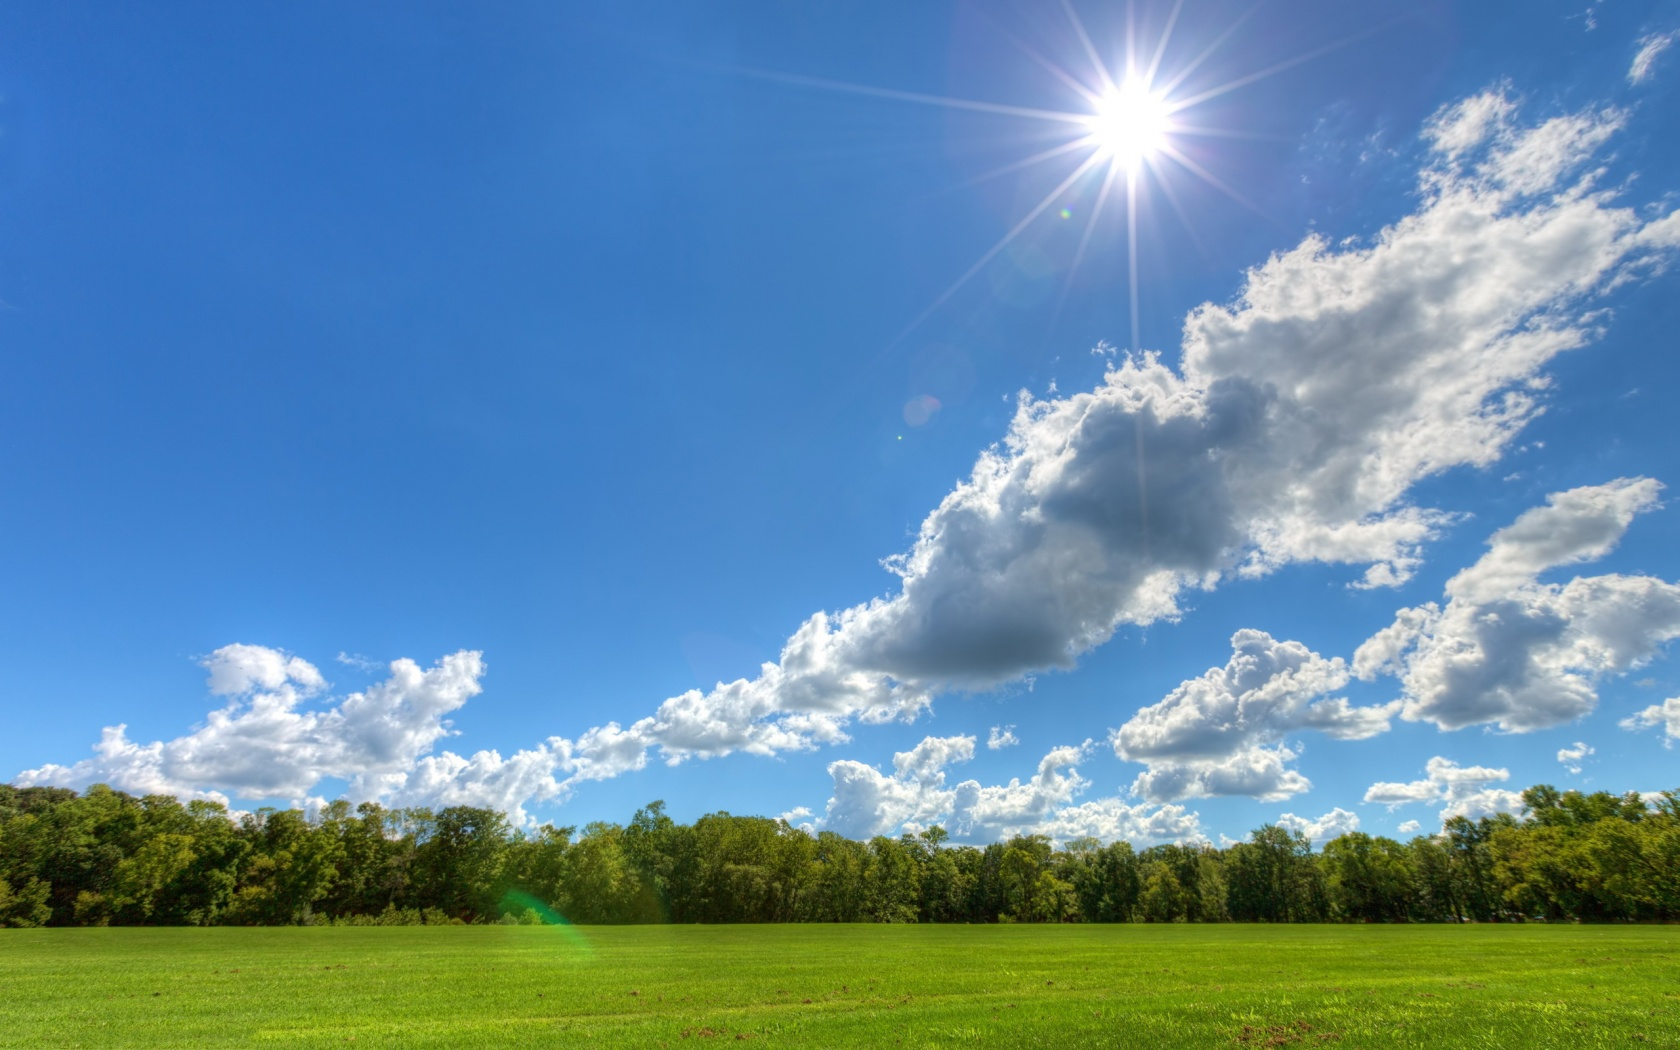 HQ 2560x1600 Resolution Sunny Day Backgrounds #899334 ...